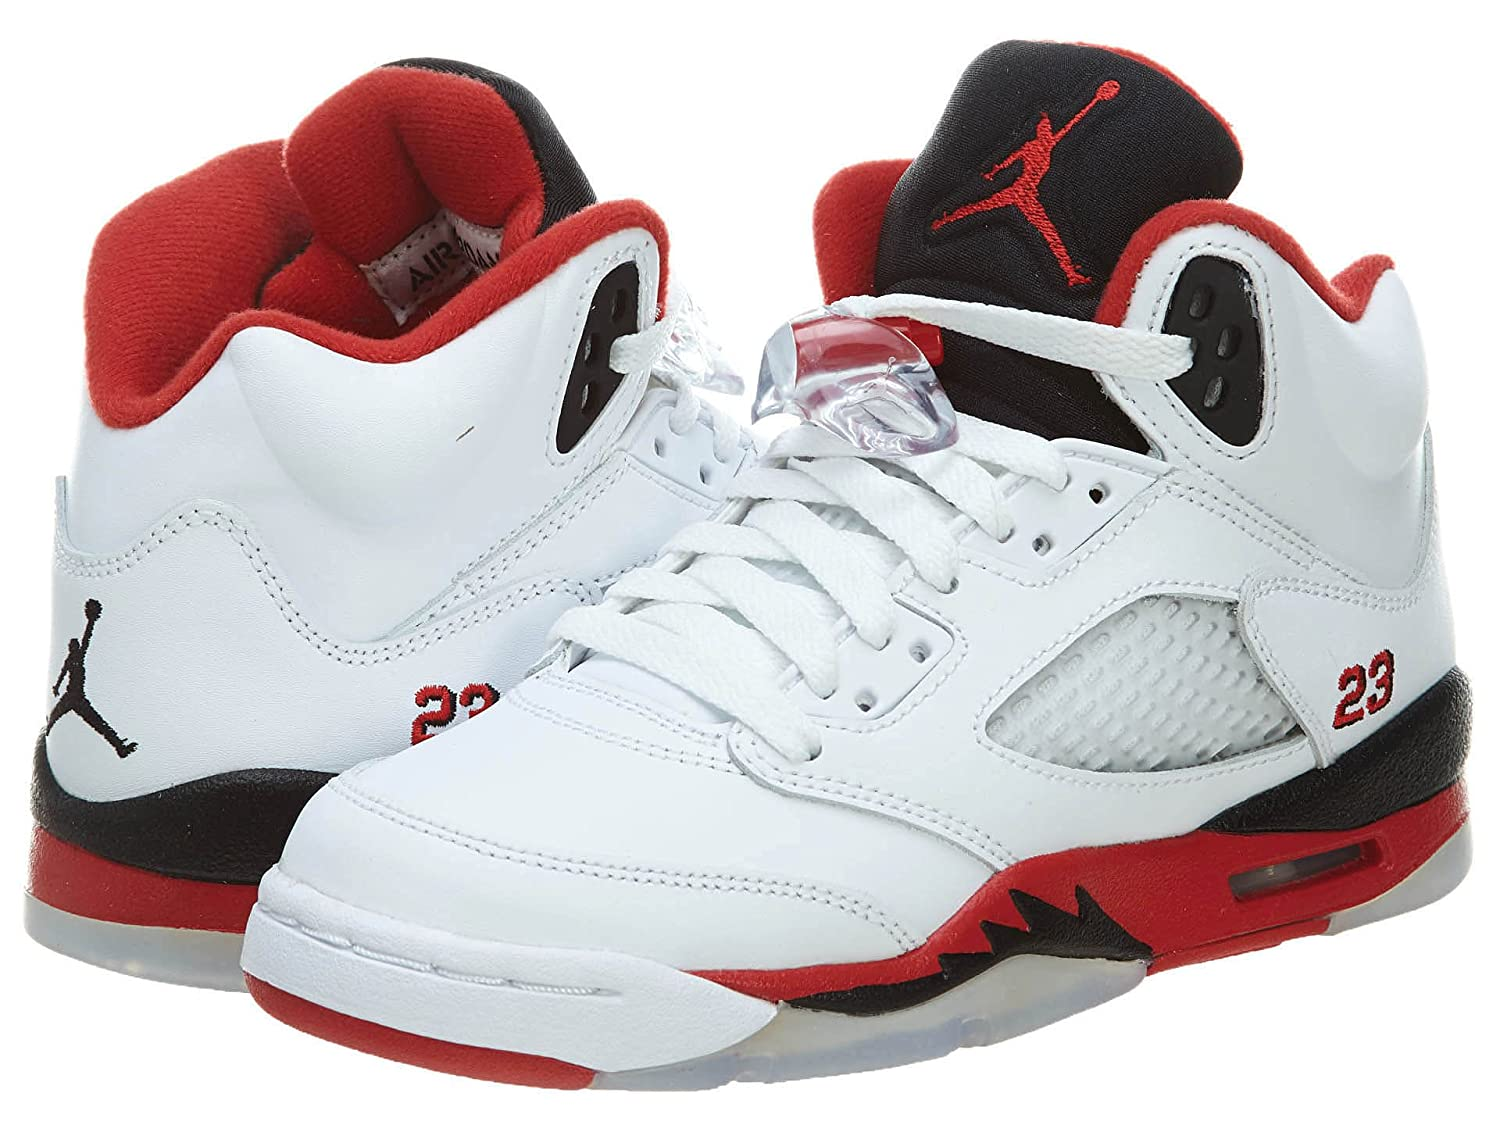 outlet store bf07f 3c917 Amazon.com   NIKE Air Jordan 5 Retro GS Fire Red Black Tongue (440888-120)    Basketball